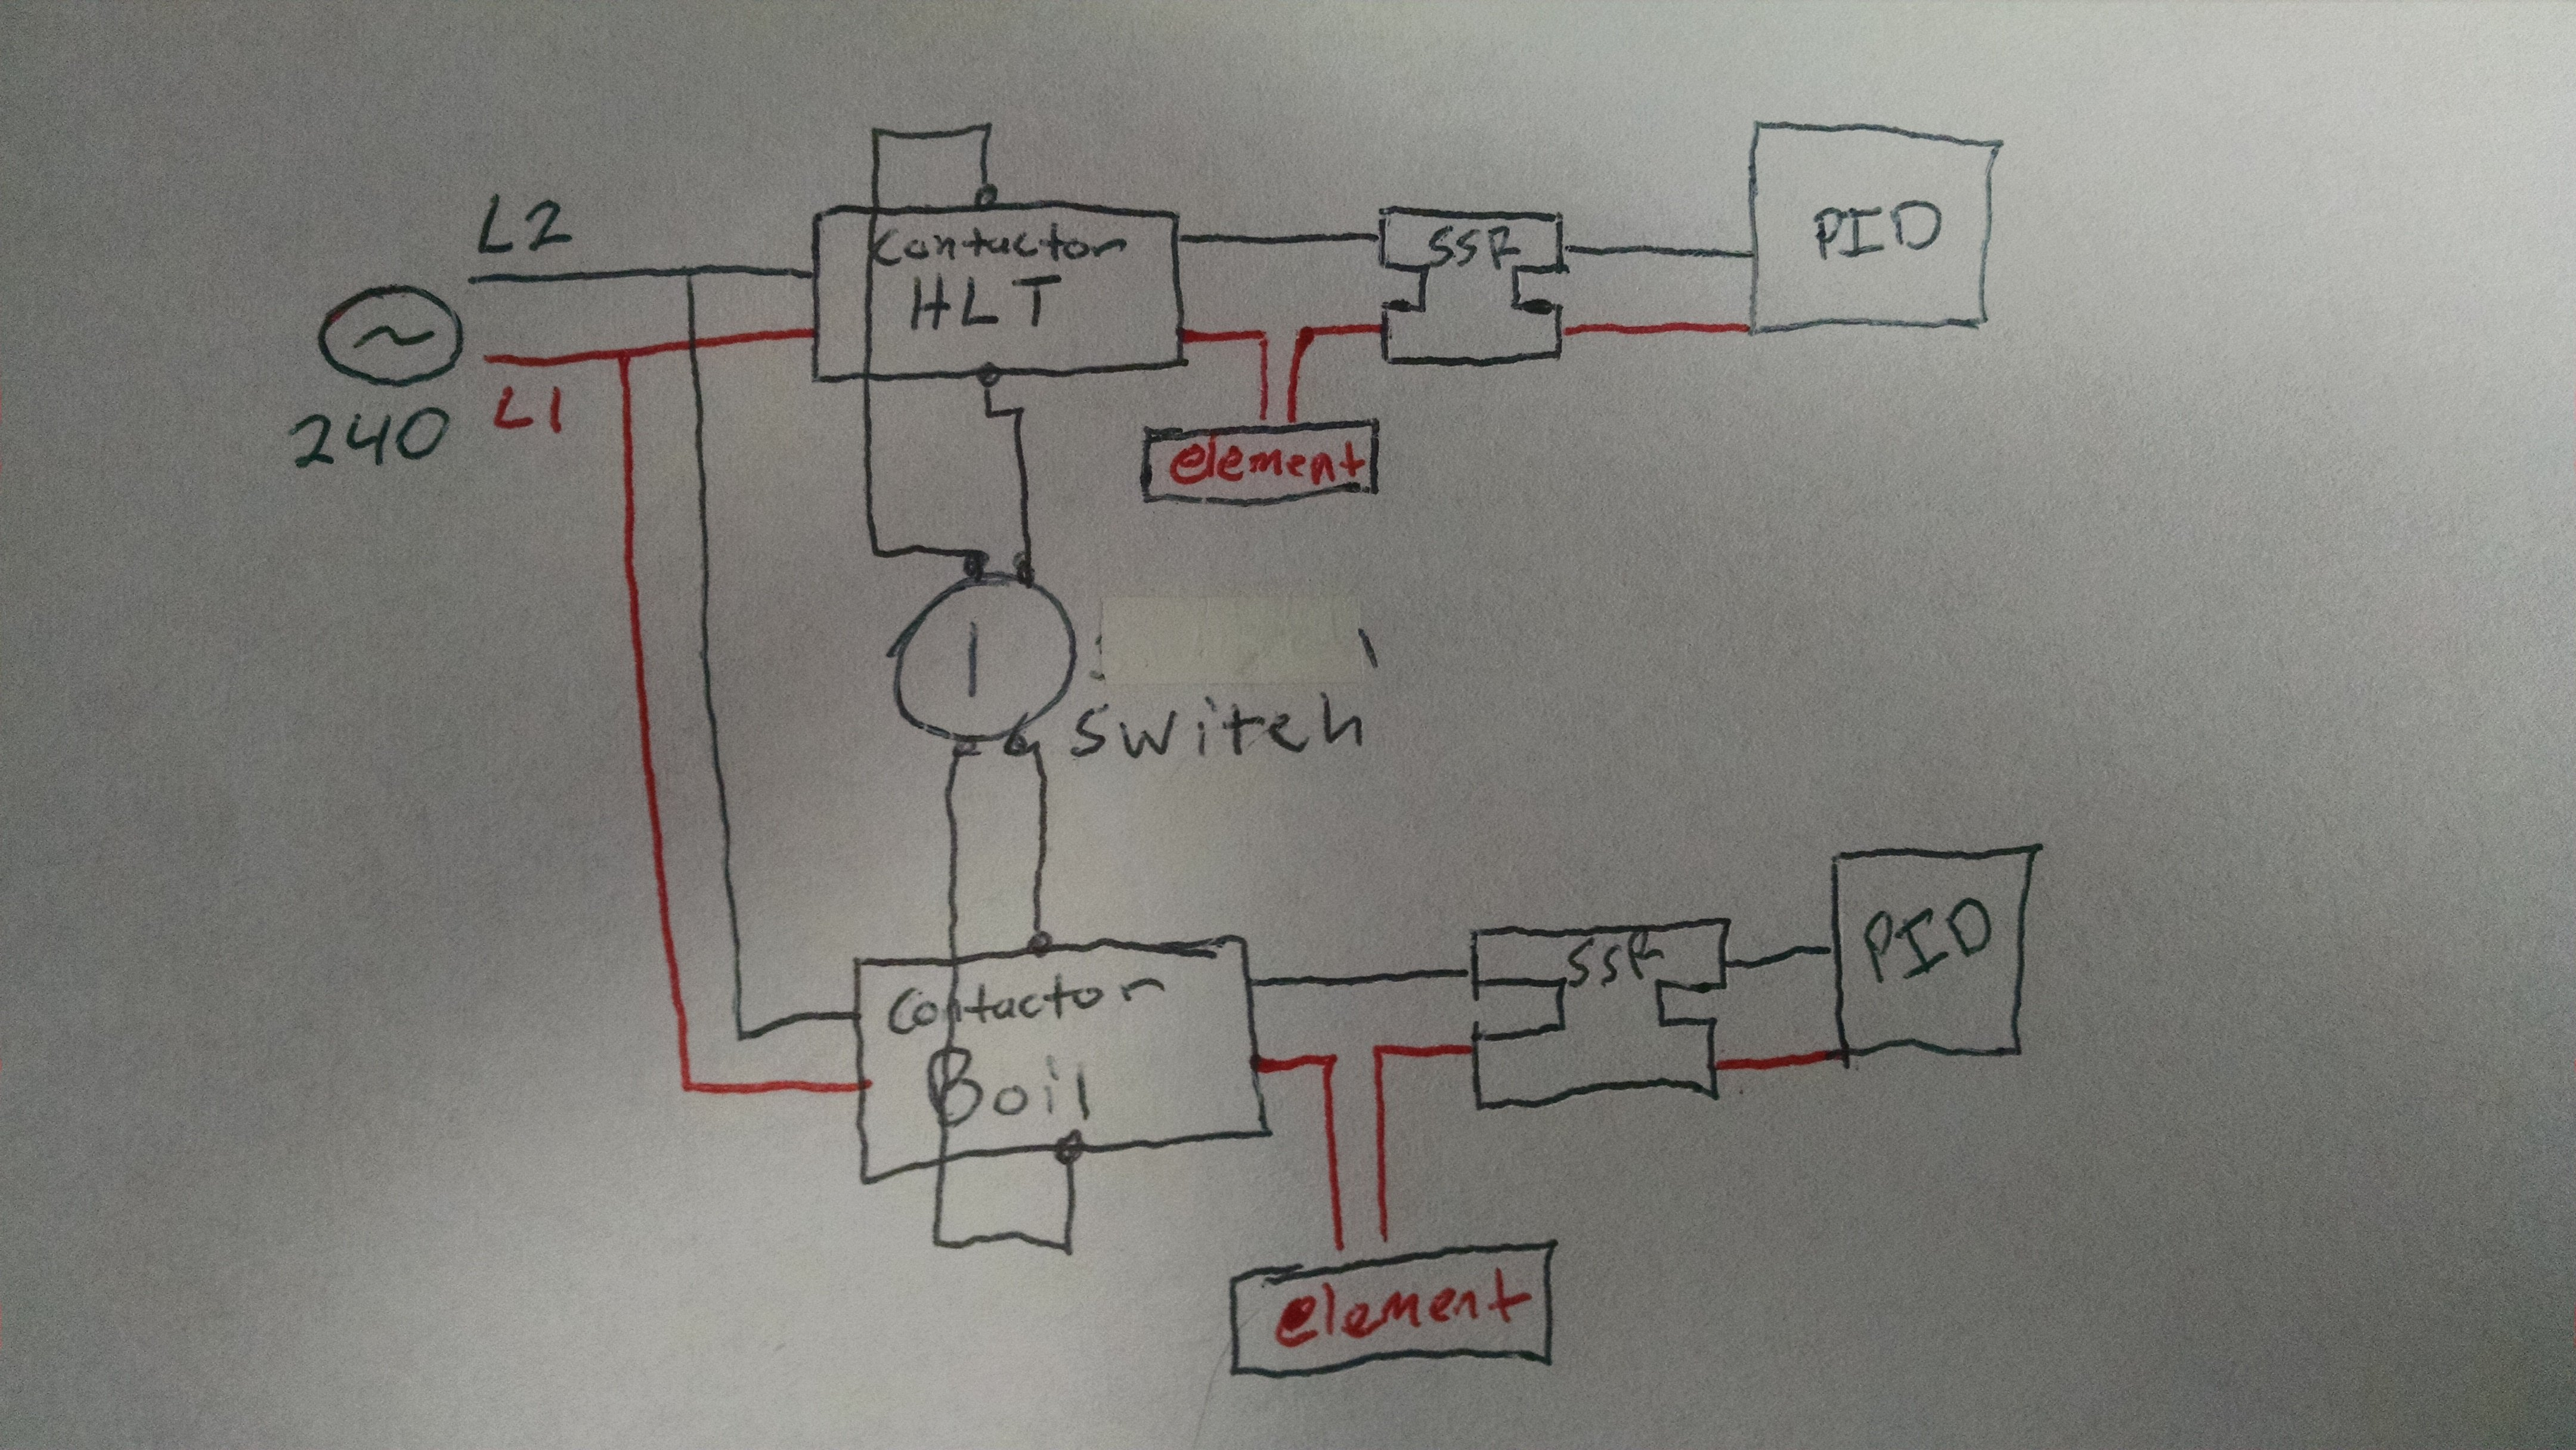 Marvelous 38 Kb Jpeg Wiring Is For 120V Plugs And 4 Wire 120V 240V Http Wiring Cloud Vieworaidewilluminateatxorg